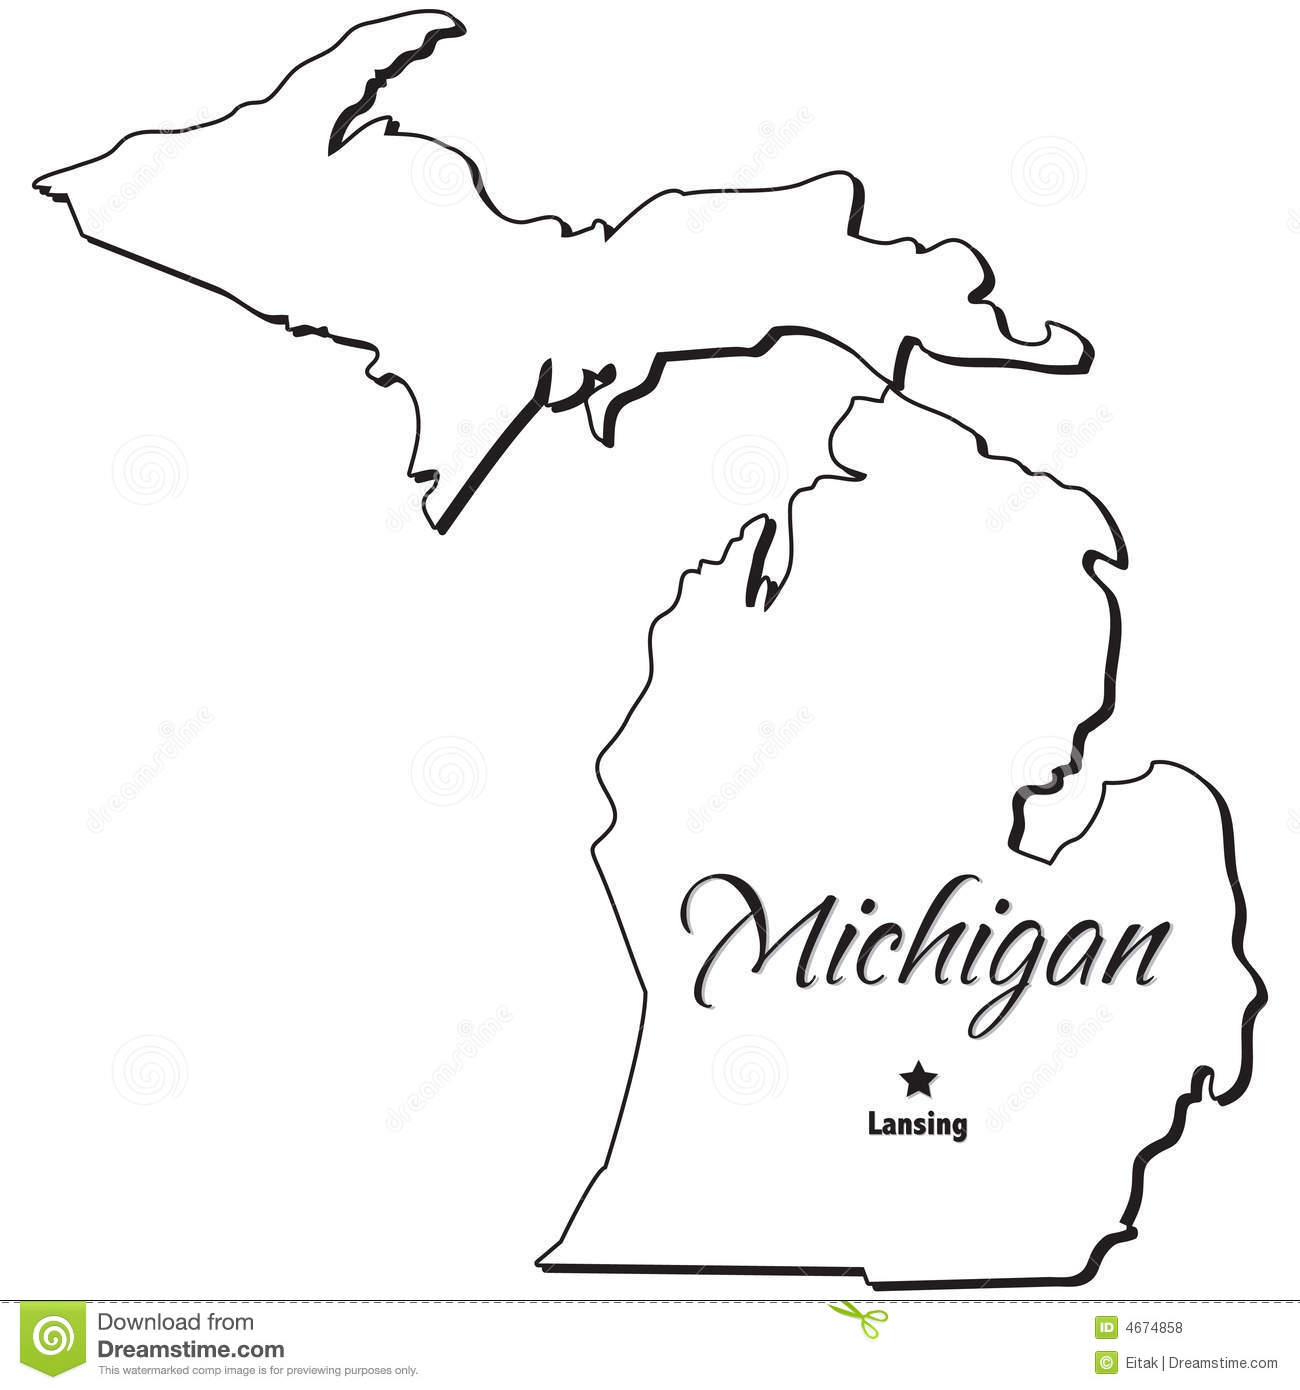 State Of Michigan Outline Stock Vector Illustration Of